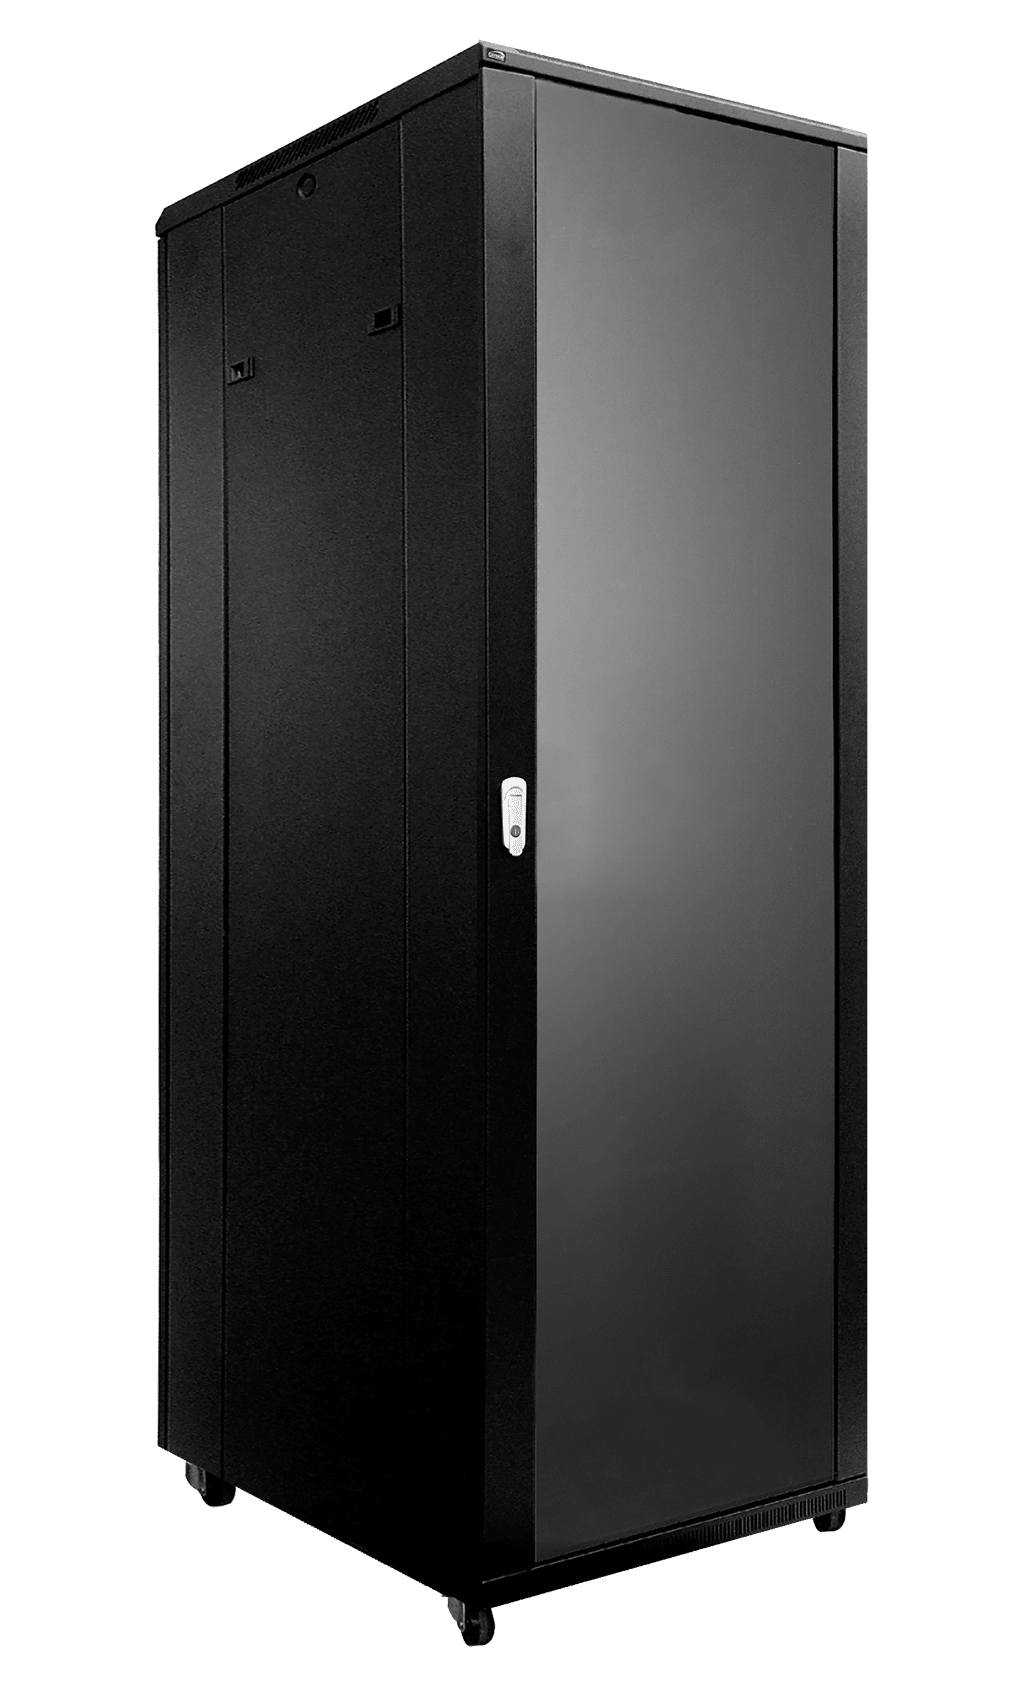 "SPR1042 - 19"" rack cabinet - 42 unit - 1000mm depth"